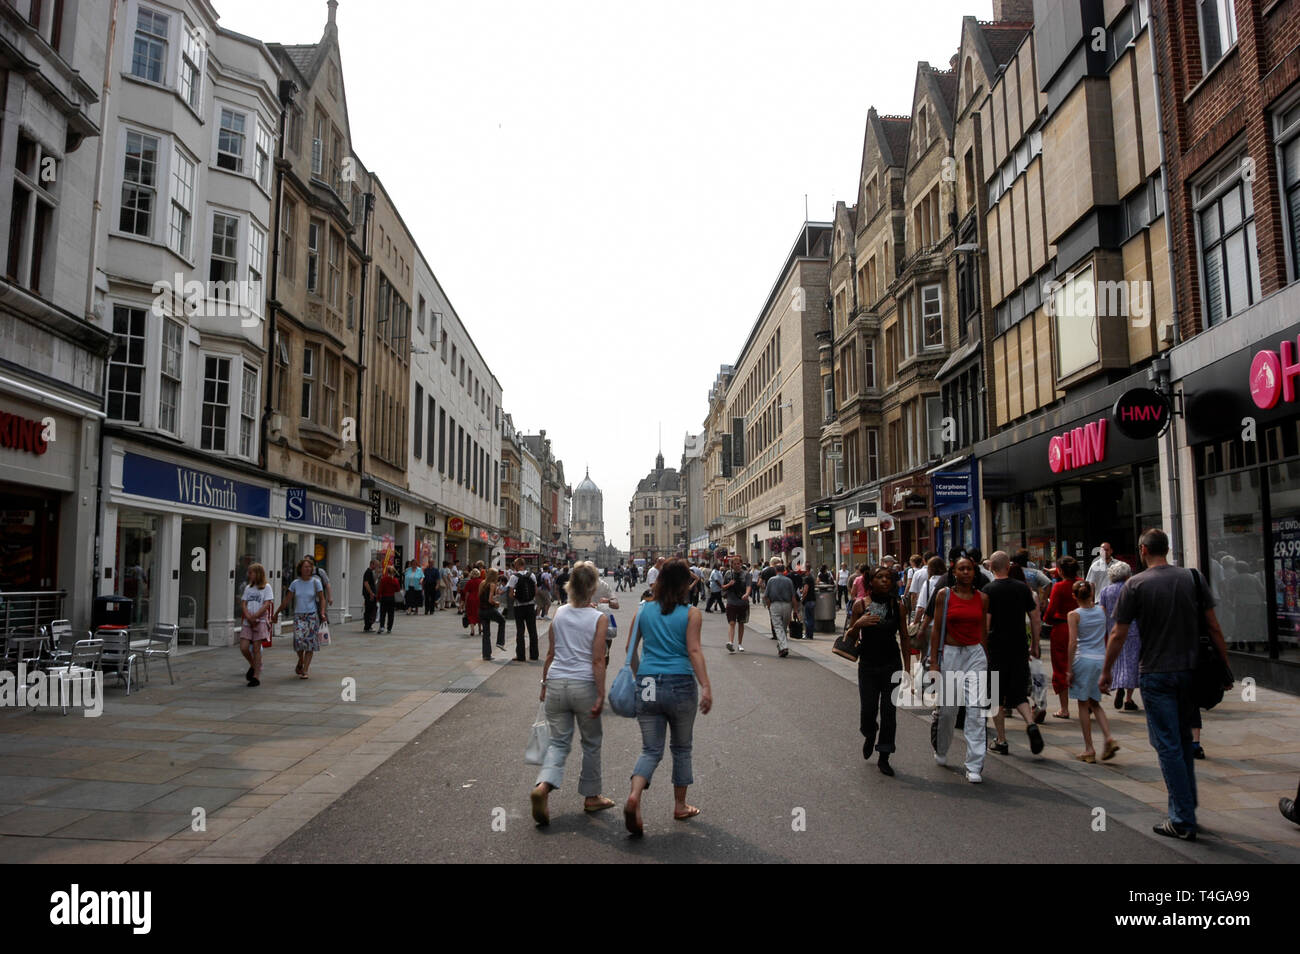 Cornmarket Street (one of the main shopping streets) in Oxford, Britain - Stock Image